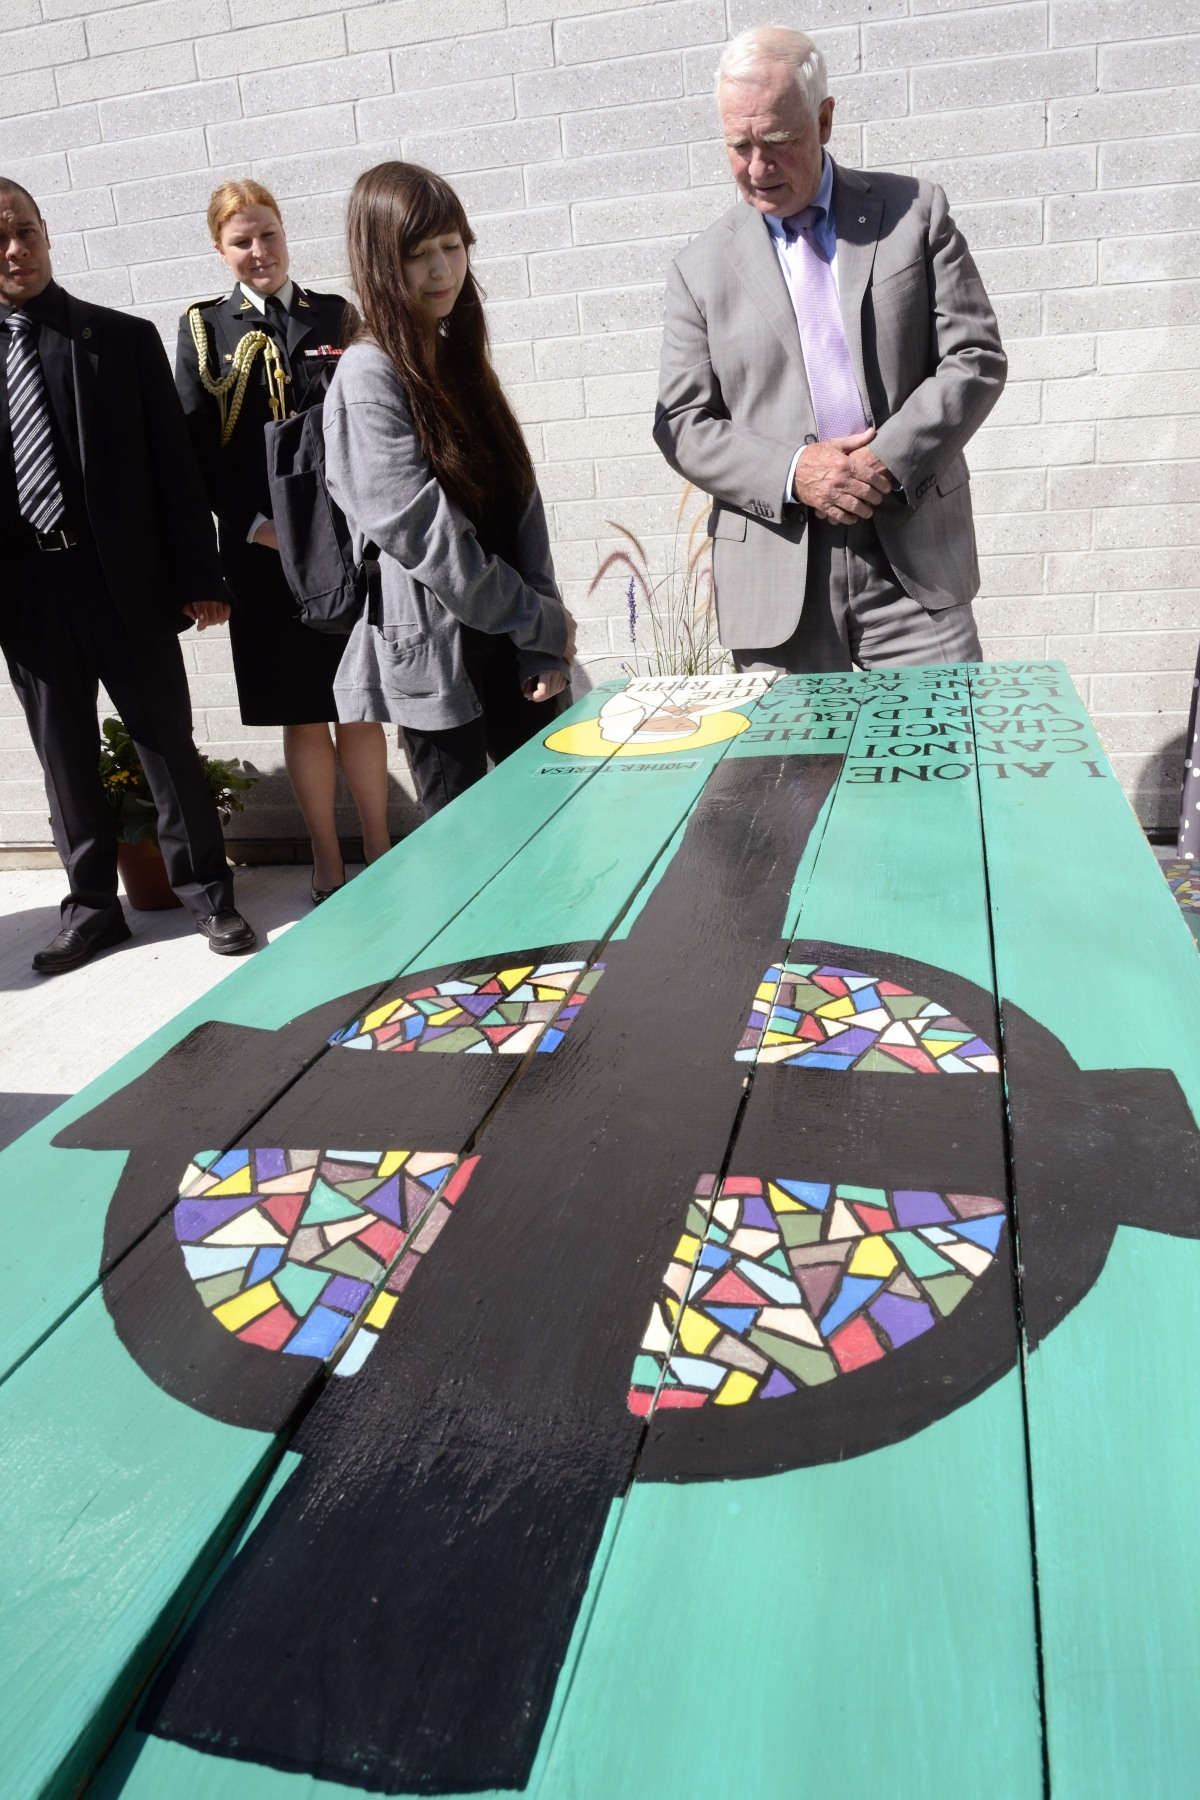 His Excellency had the opportunity to see examples of the talent of the Monsignor Fraser College's students like these beautiful paintings decorating picnic tables.